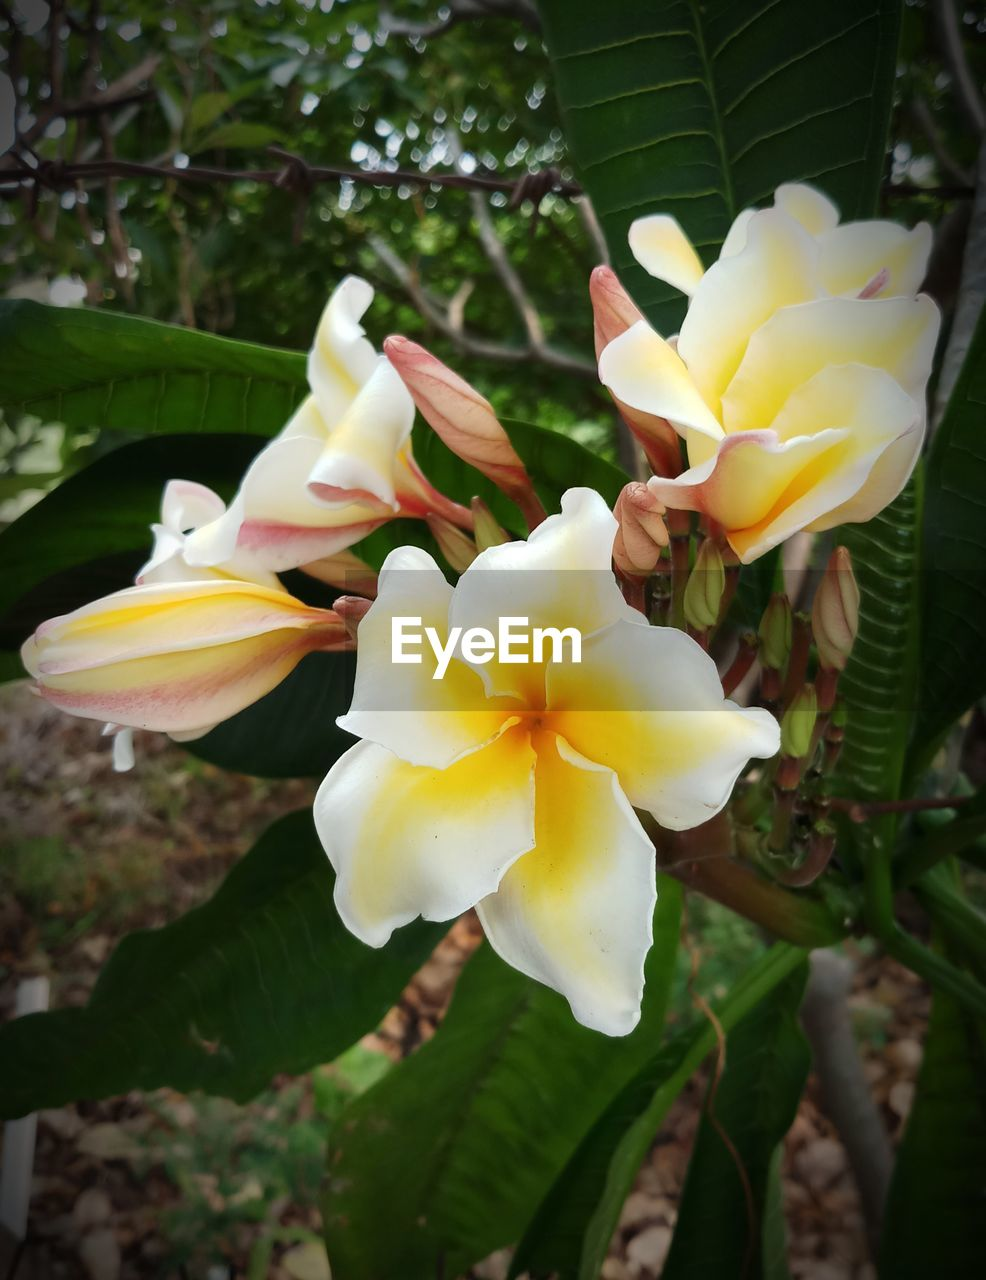 flower, petal, beauty in nature, fragility, flower head, freshness, nature, growth, yellow, plant, blooming, day, close-up, outdoors, no people, frangipani, springtime, tree, day lily